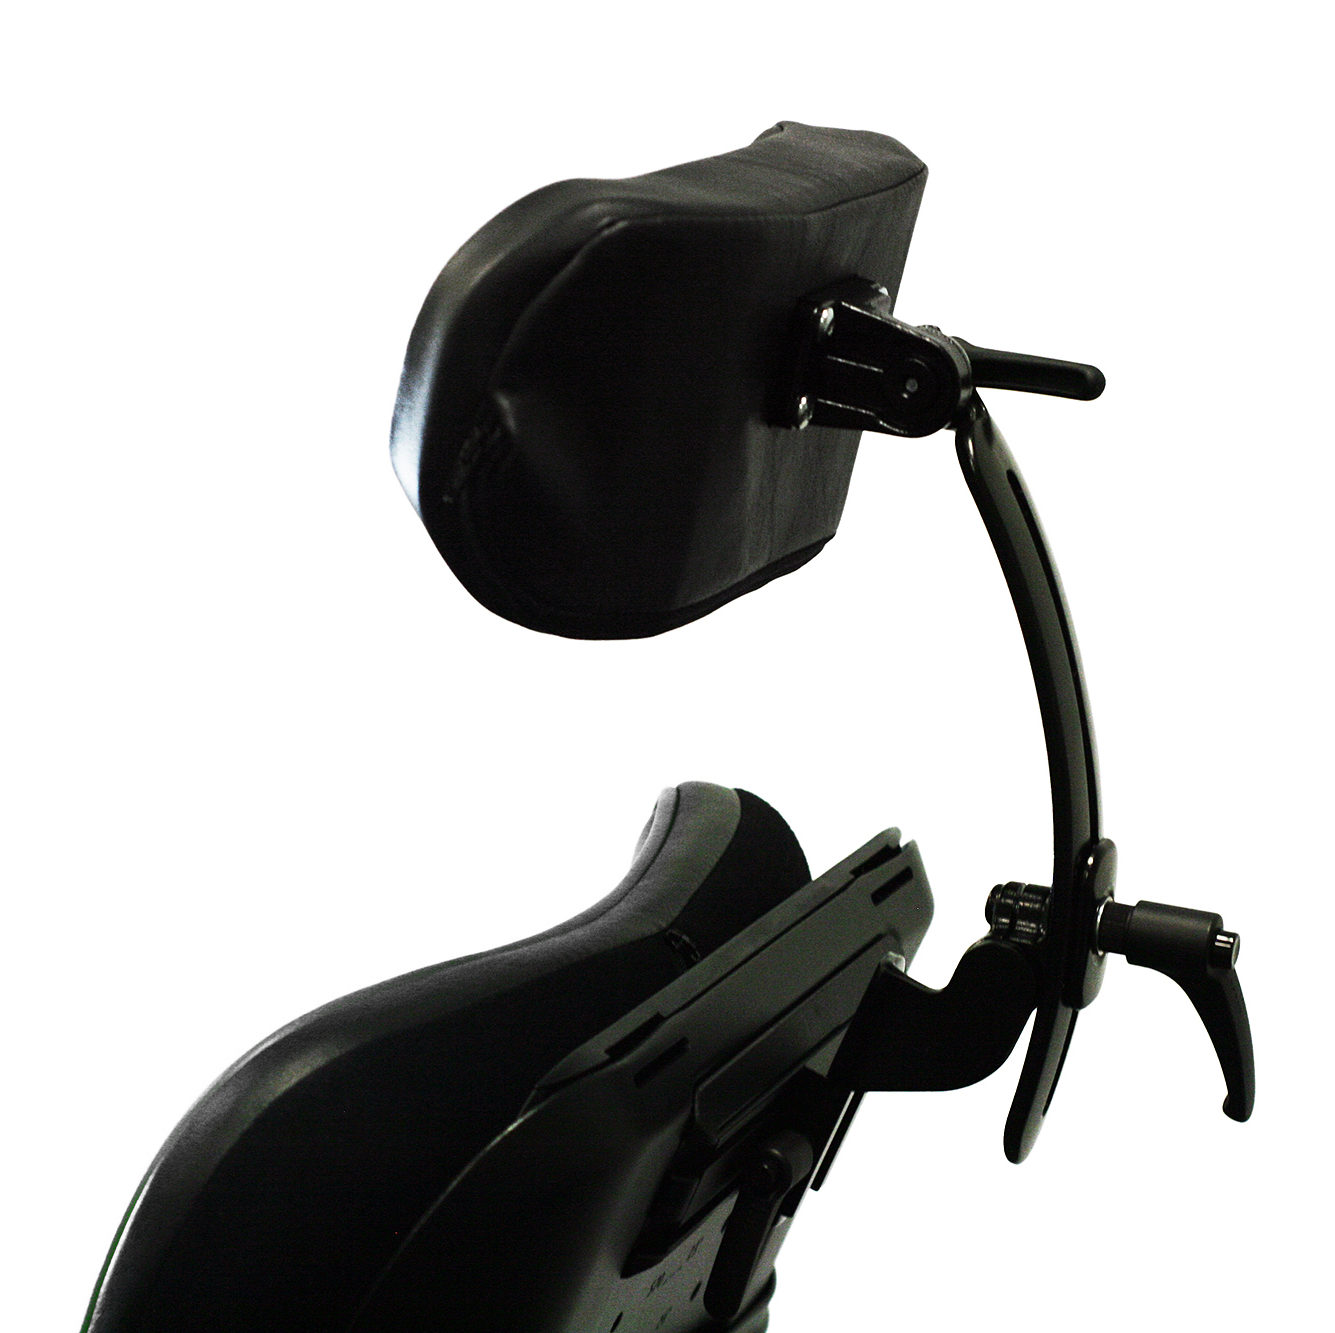 Corpus 3G Headrest - side